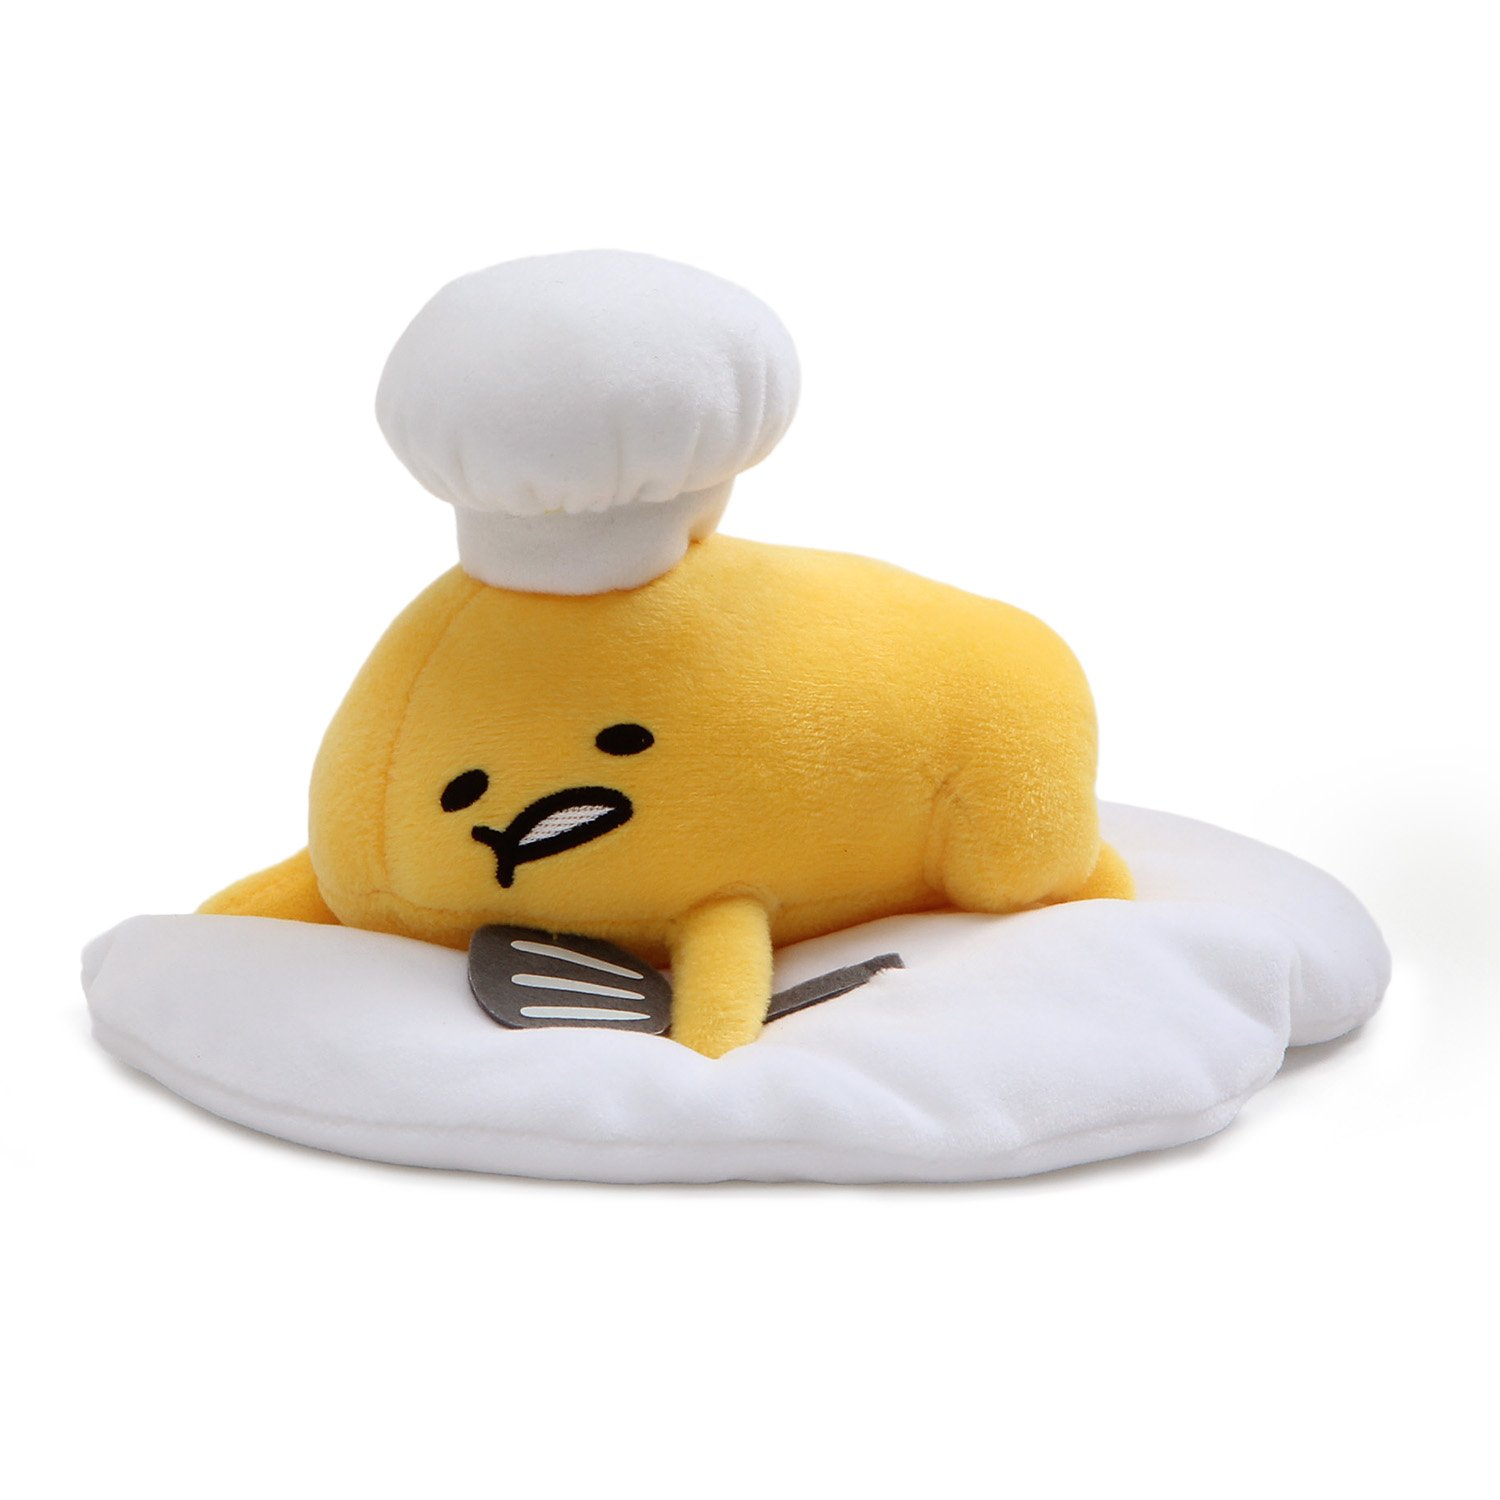 "GUND Gudetama ""Lazy Chef Egg with Hat and Spatula"" Stuffed Animal Plush, 7.5"""